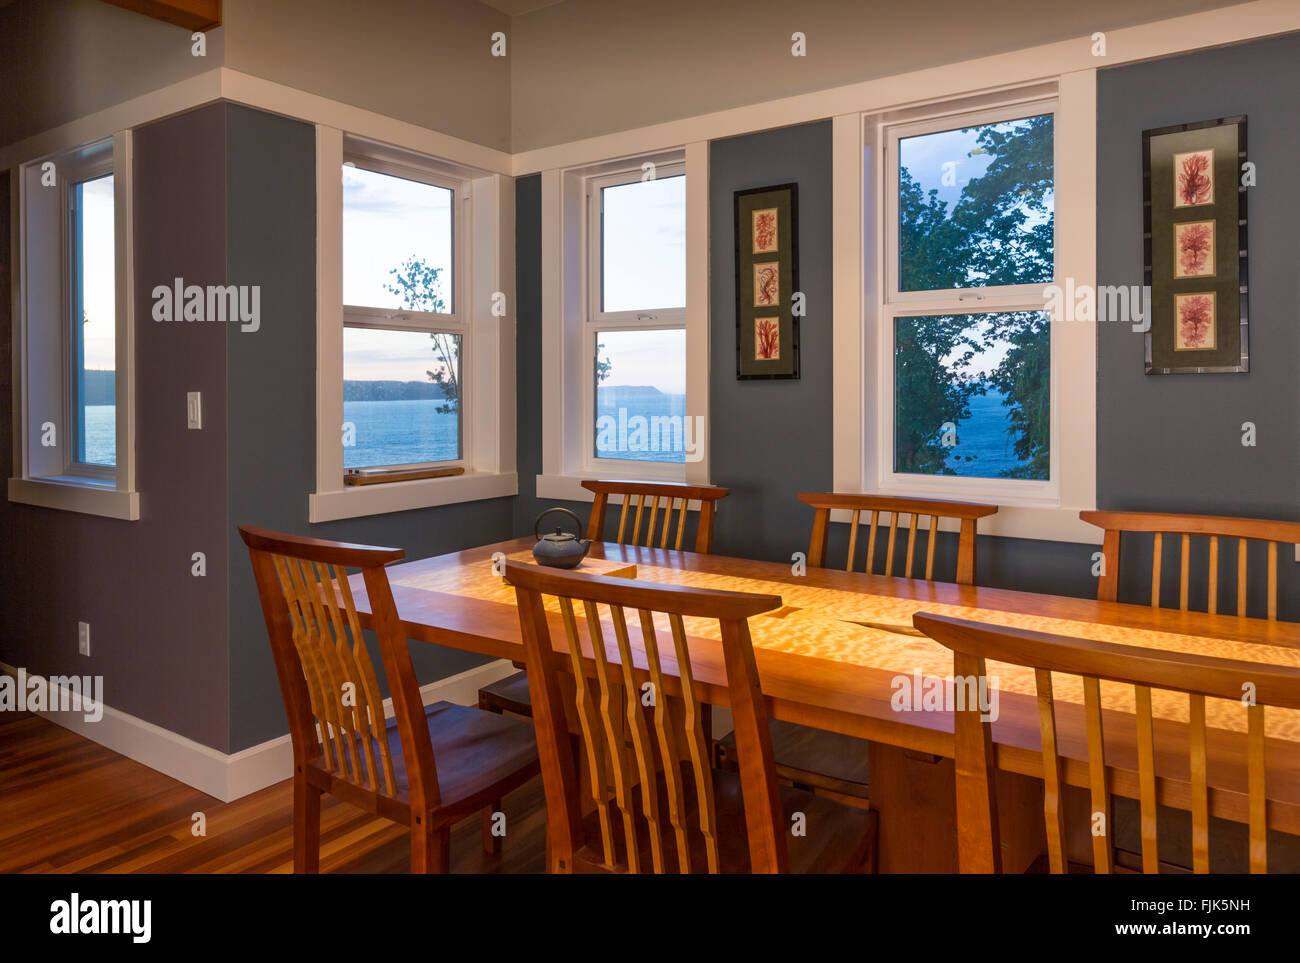 Dining area with wood table and chairs and view windows in contemporary upscale home interior - Stock Image